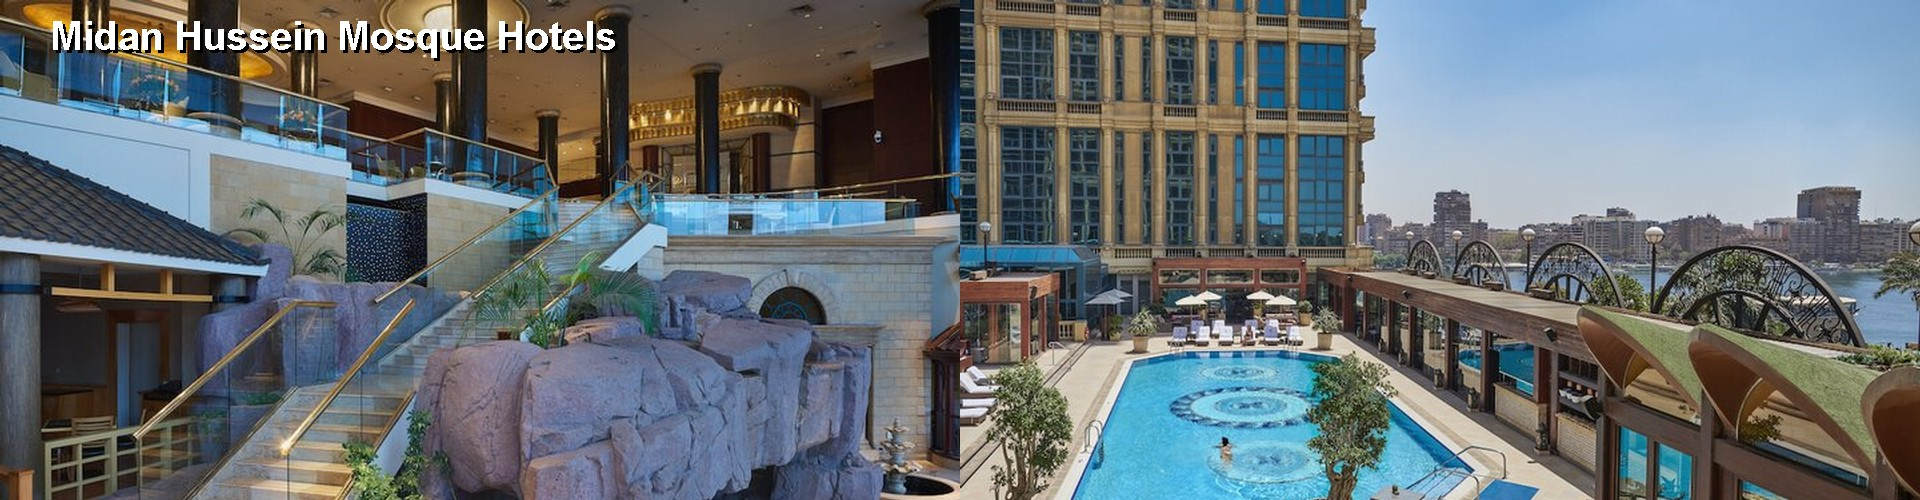 5 Best Hotels near Midan Hussein Mosque